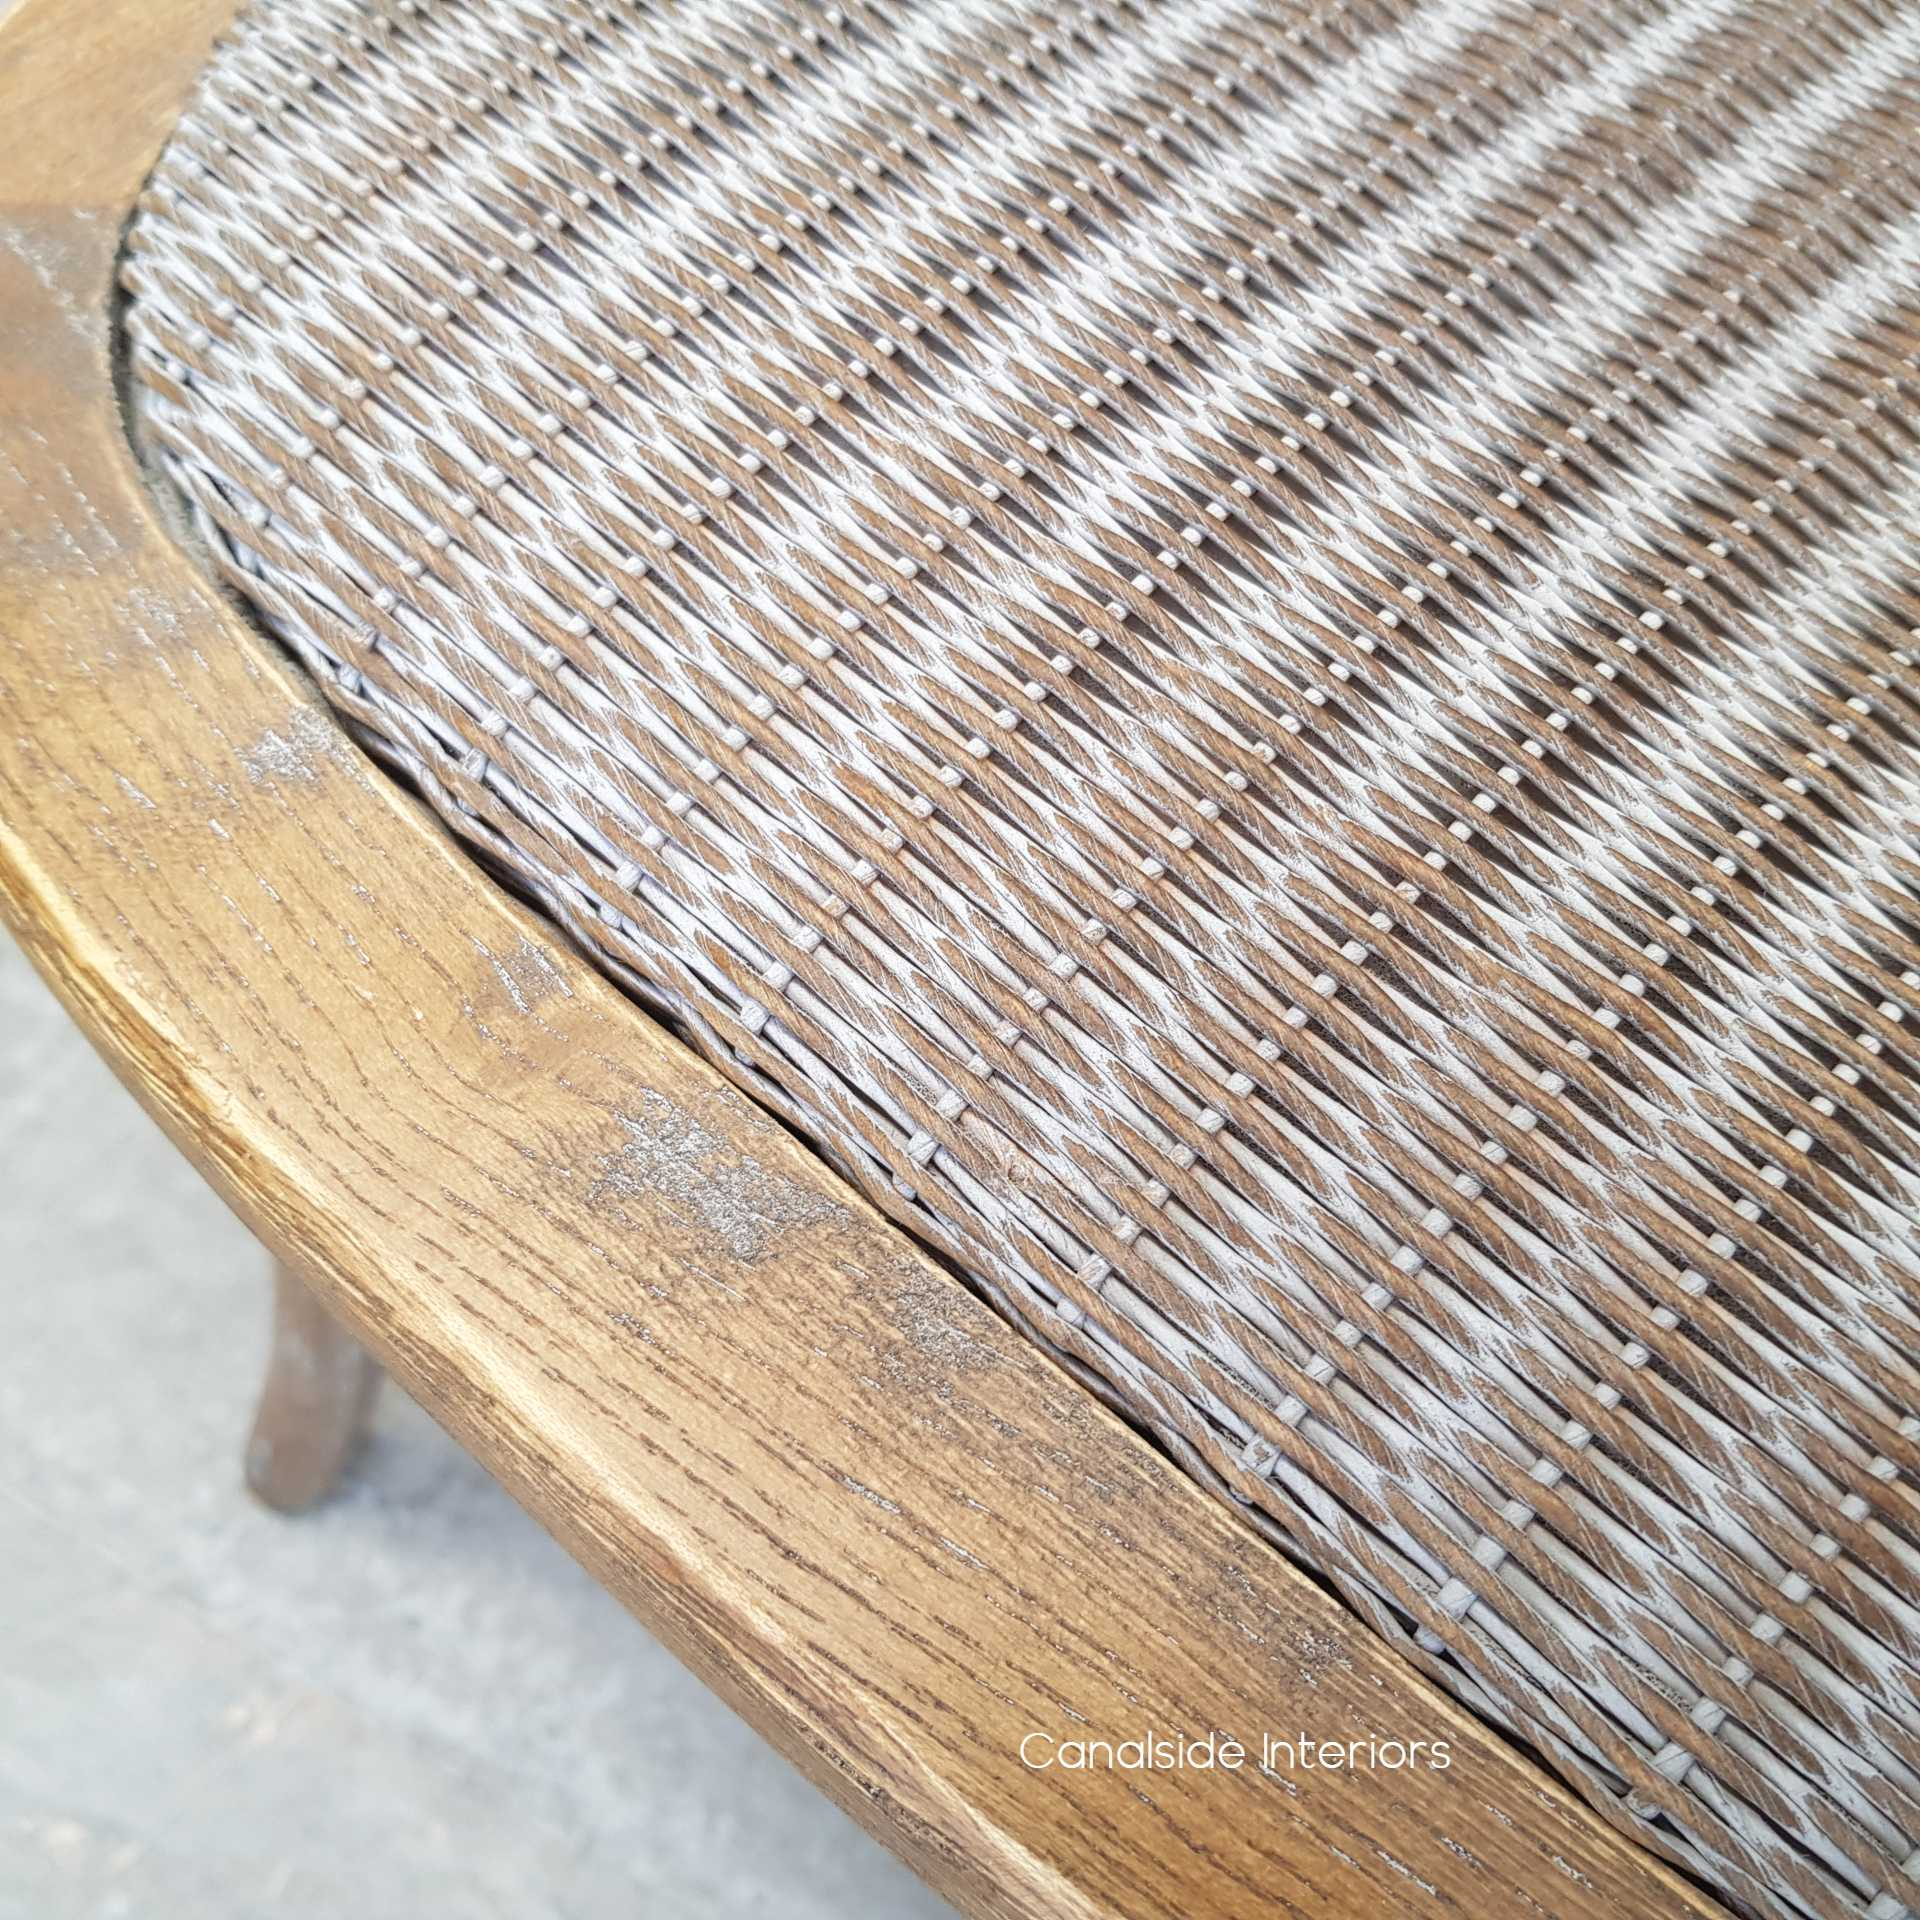 Botanica Chair Sand  Dining, CHAIRS, CAFE FURNITURE, HAMPTONS Style, PLANTATION Style, CHAIRS Dining, CAFE FURNITURE Stools & Chairs, PLANTATION STYLE